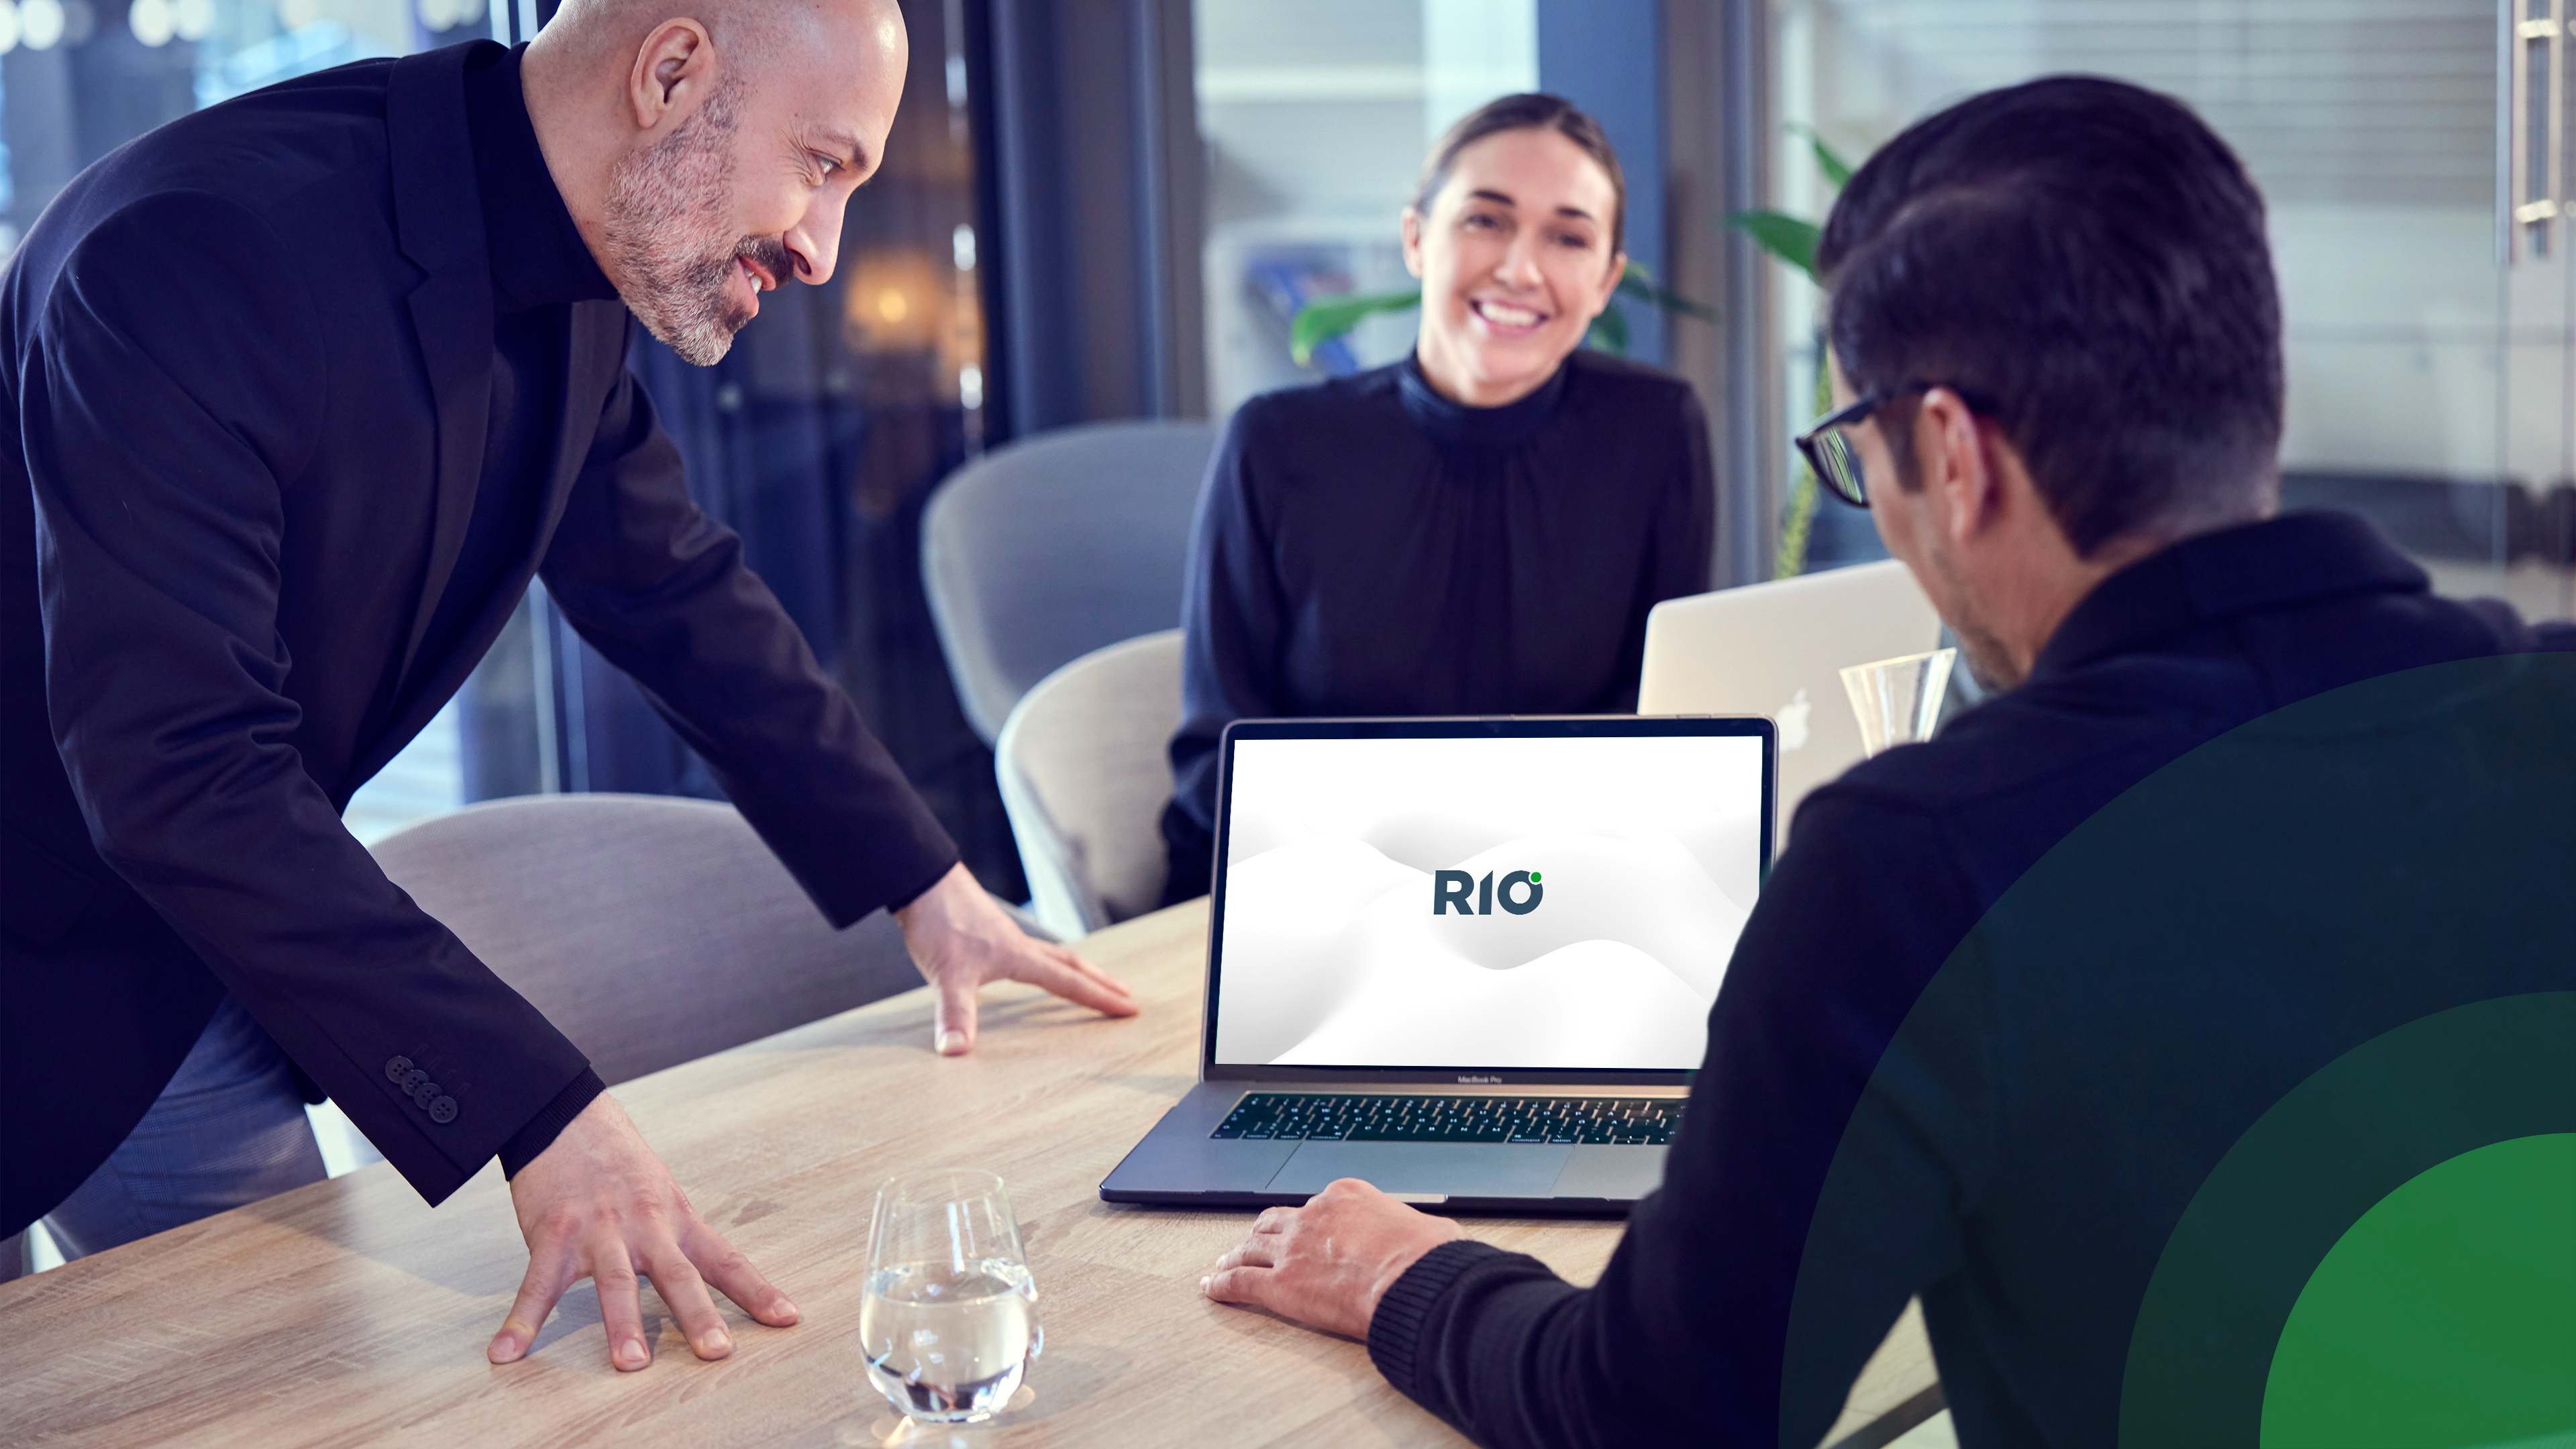 RIO team looking at a laptop with the RIO logo